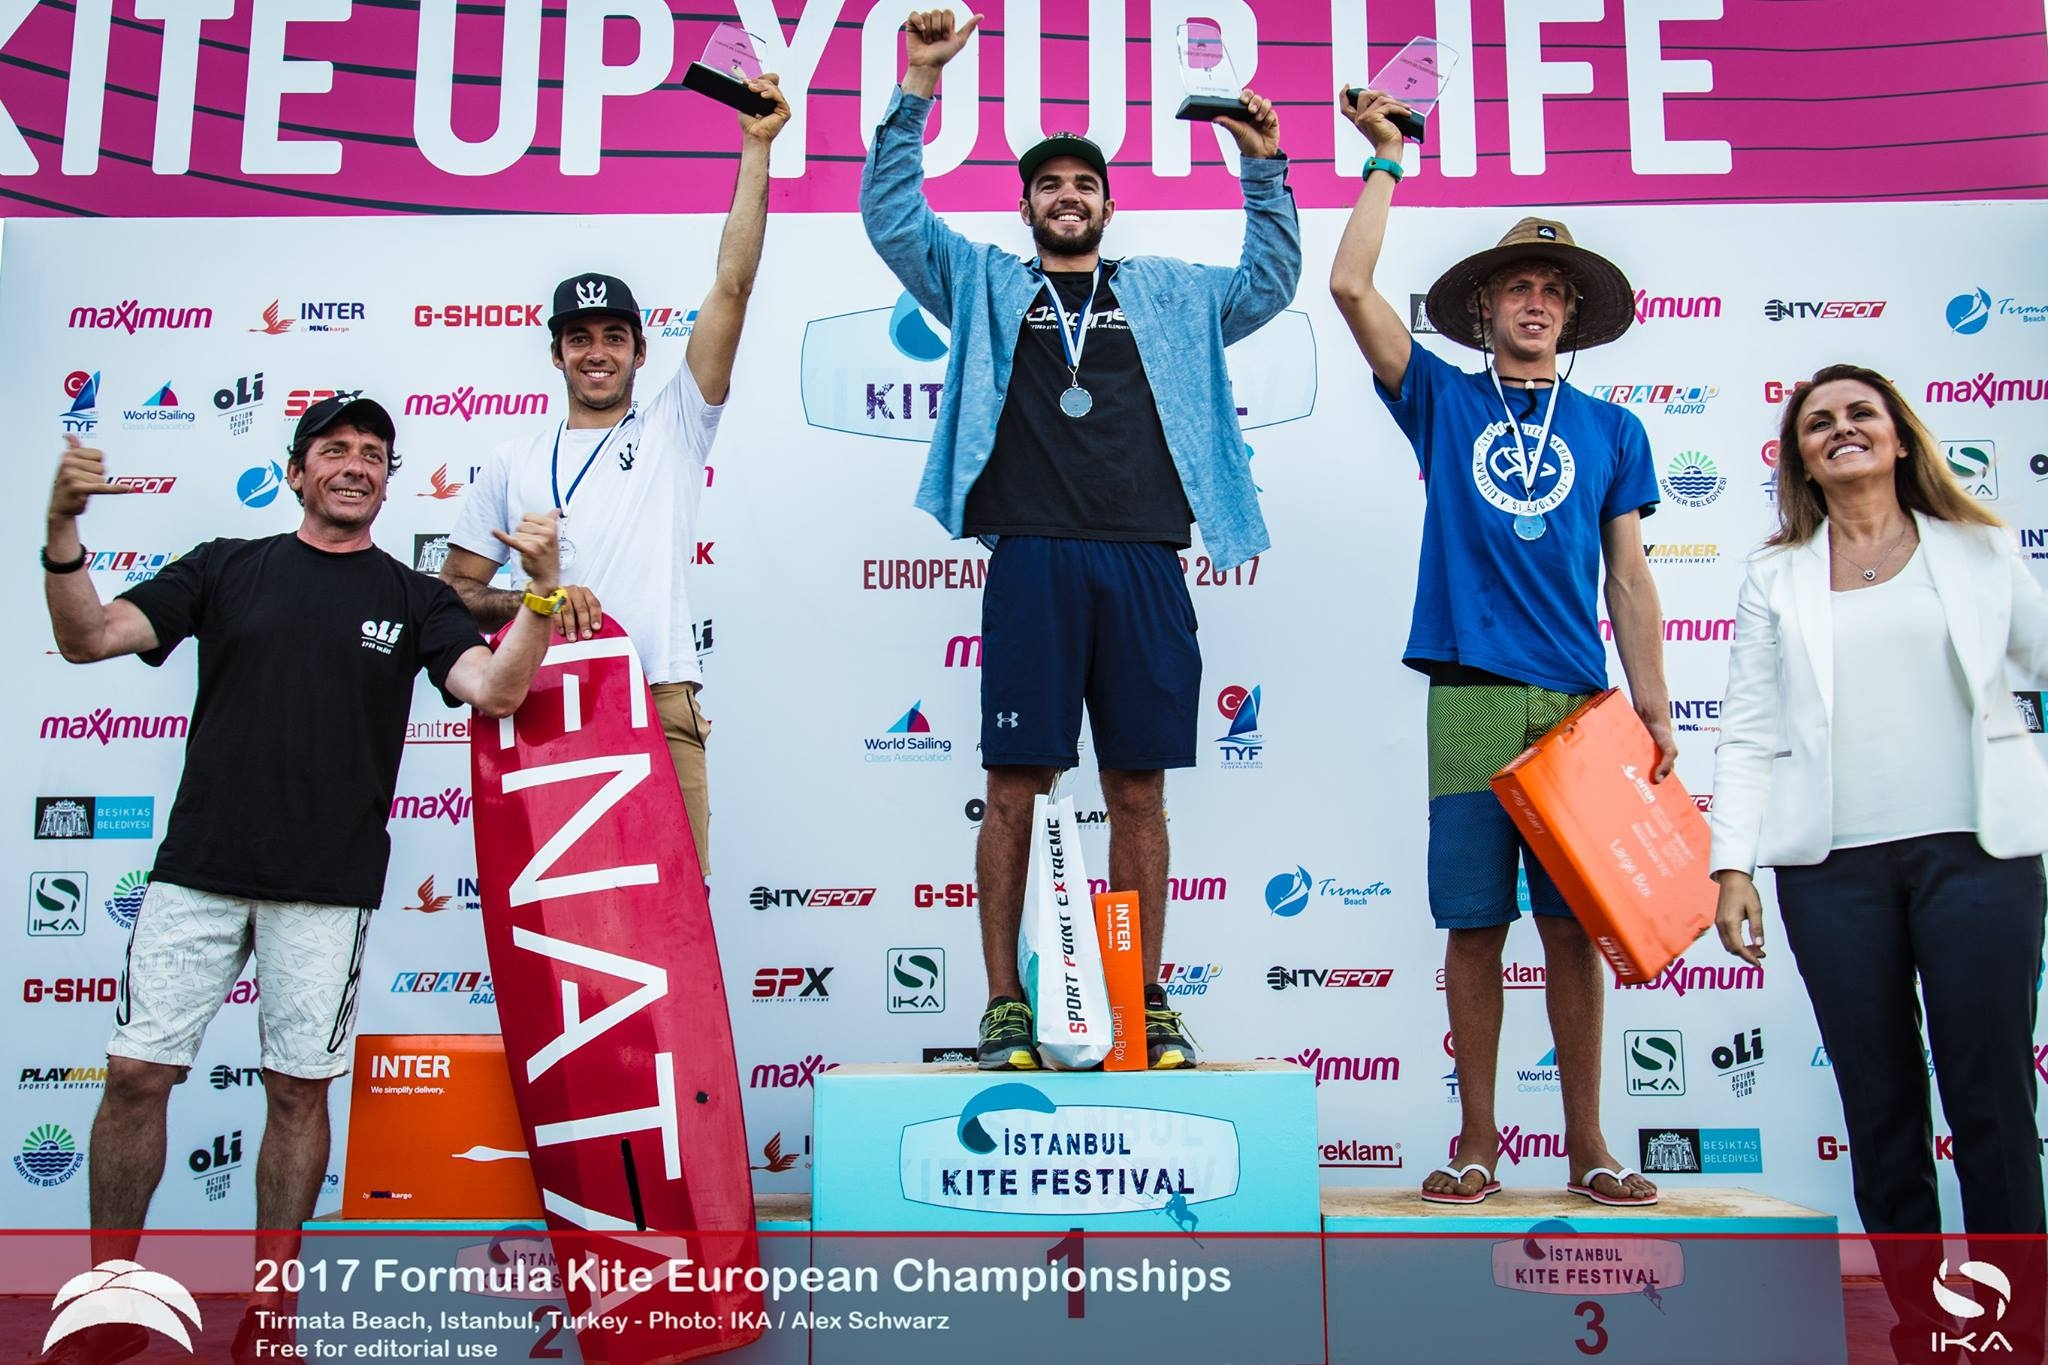 Parlier and Moroz crowned 2017 Formula Kite European Champions after a week of racing in challenging conditions